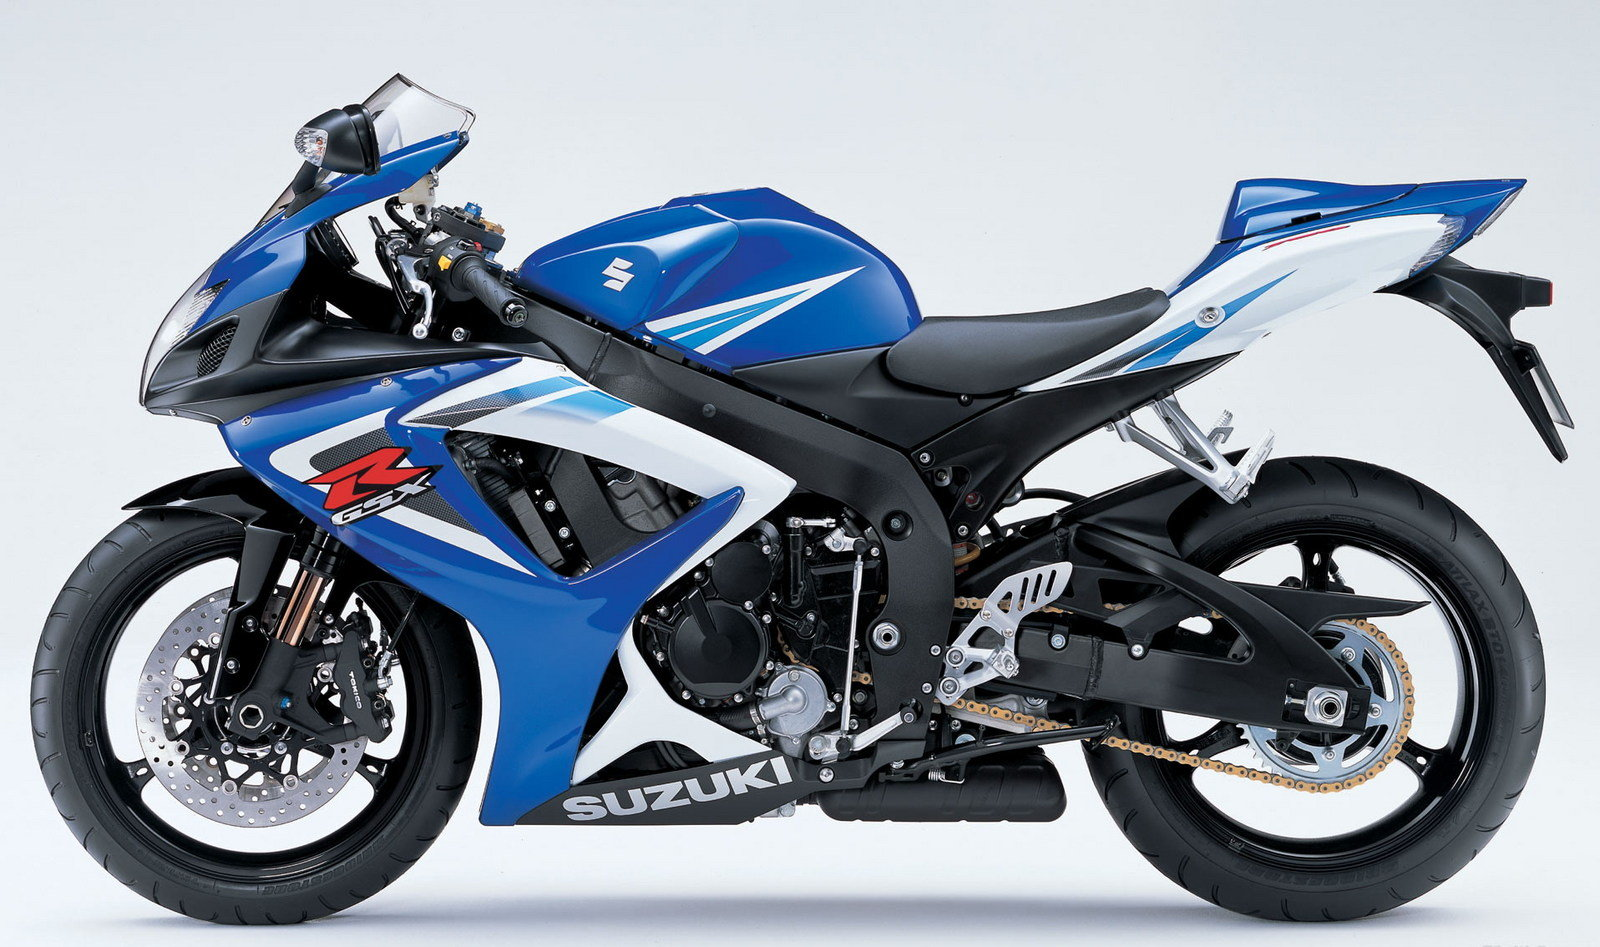 suzuki gsxr 750 picture 84612 motorcycle review top speed. Black Bedroom Furniture Sets. Home Design Ideas